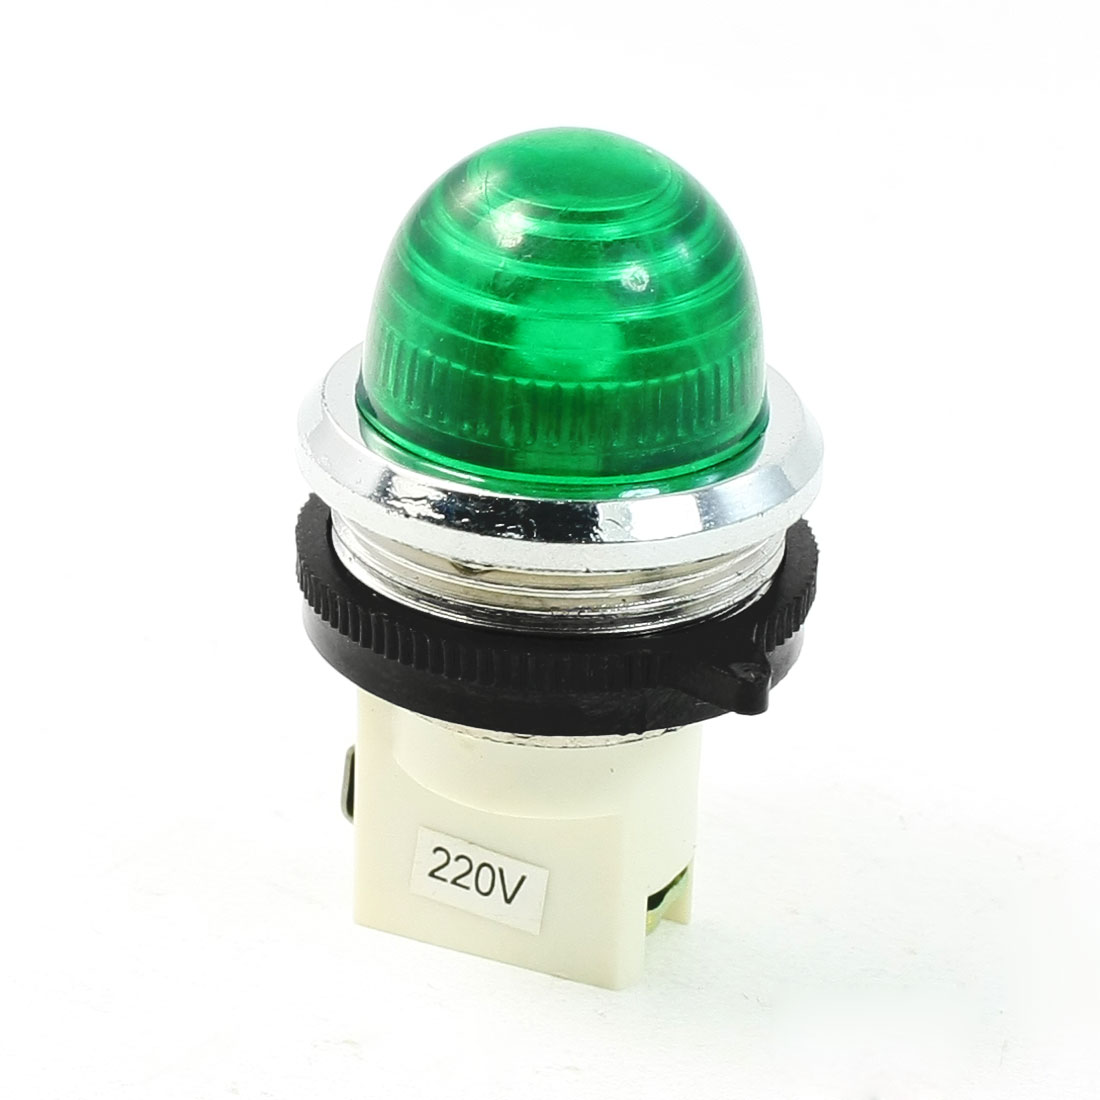 AC 220V Green Power Indicator Pilot Signals Light Lamp